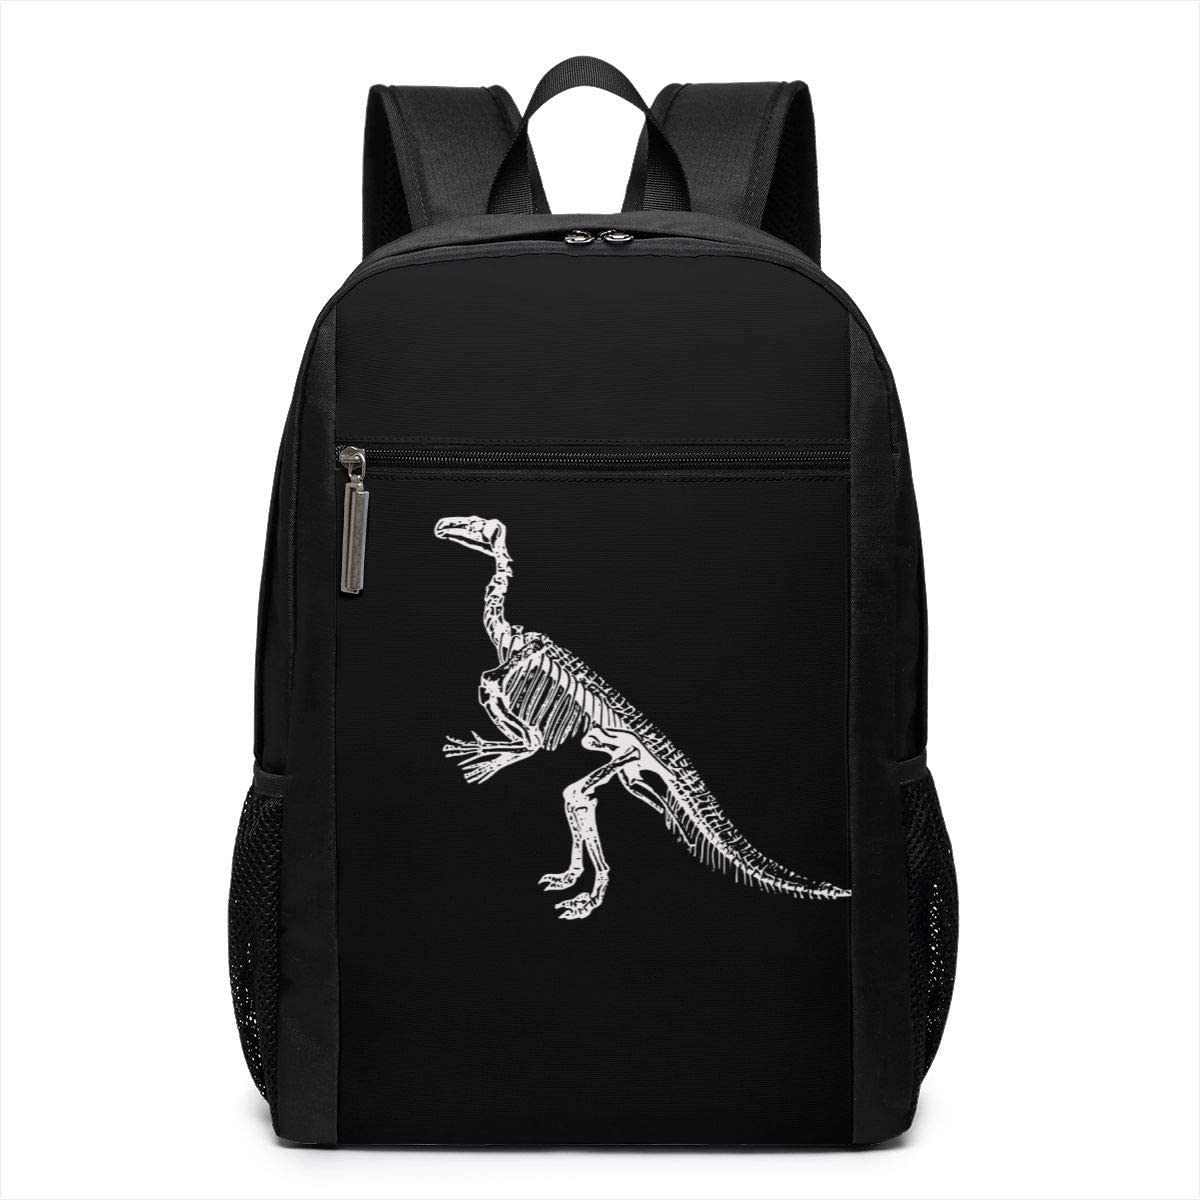 XTYND556 Dinosaur College Commuter Backpack Large Capacity Laptop Bag 17 Inch Travel Bag